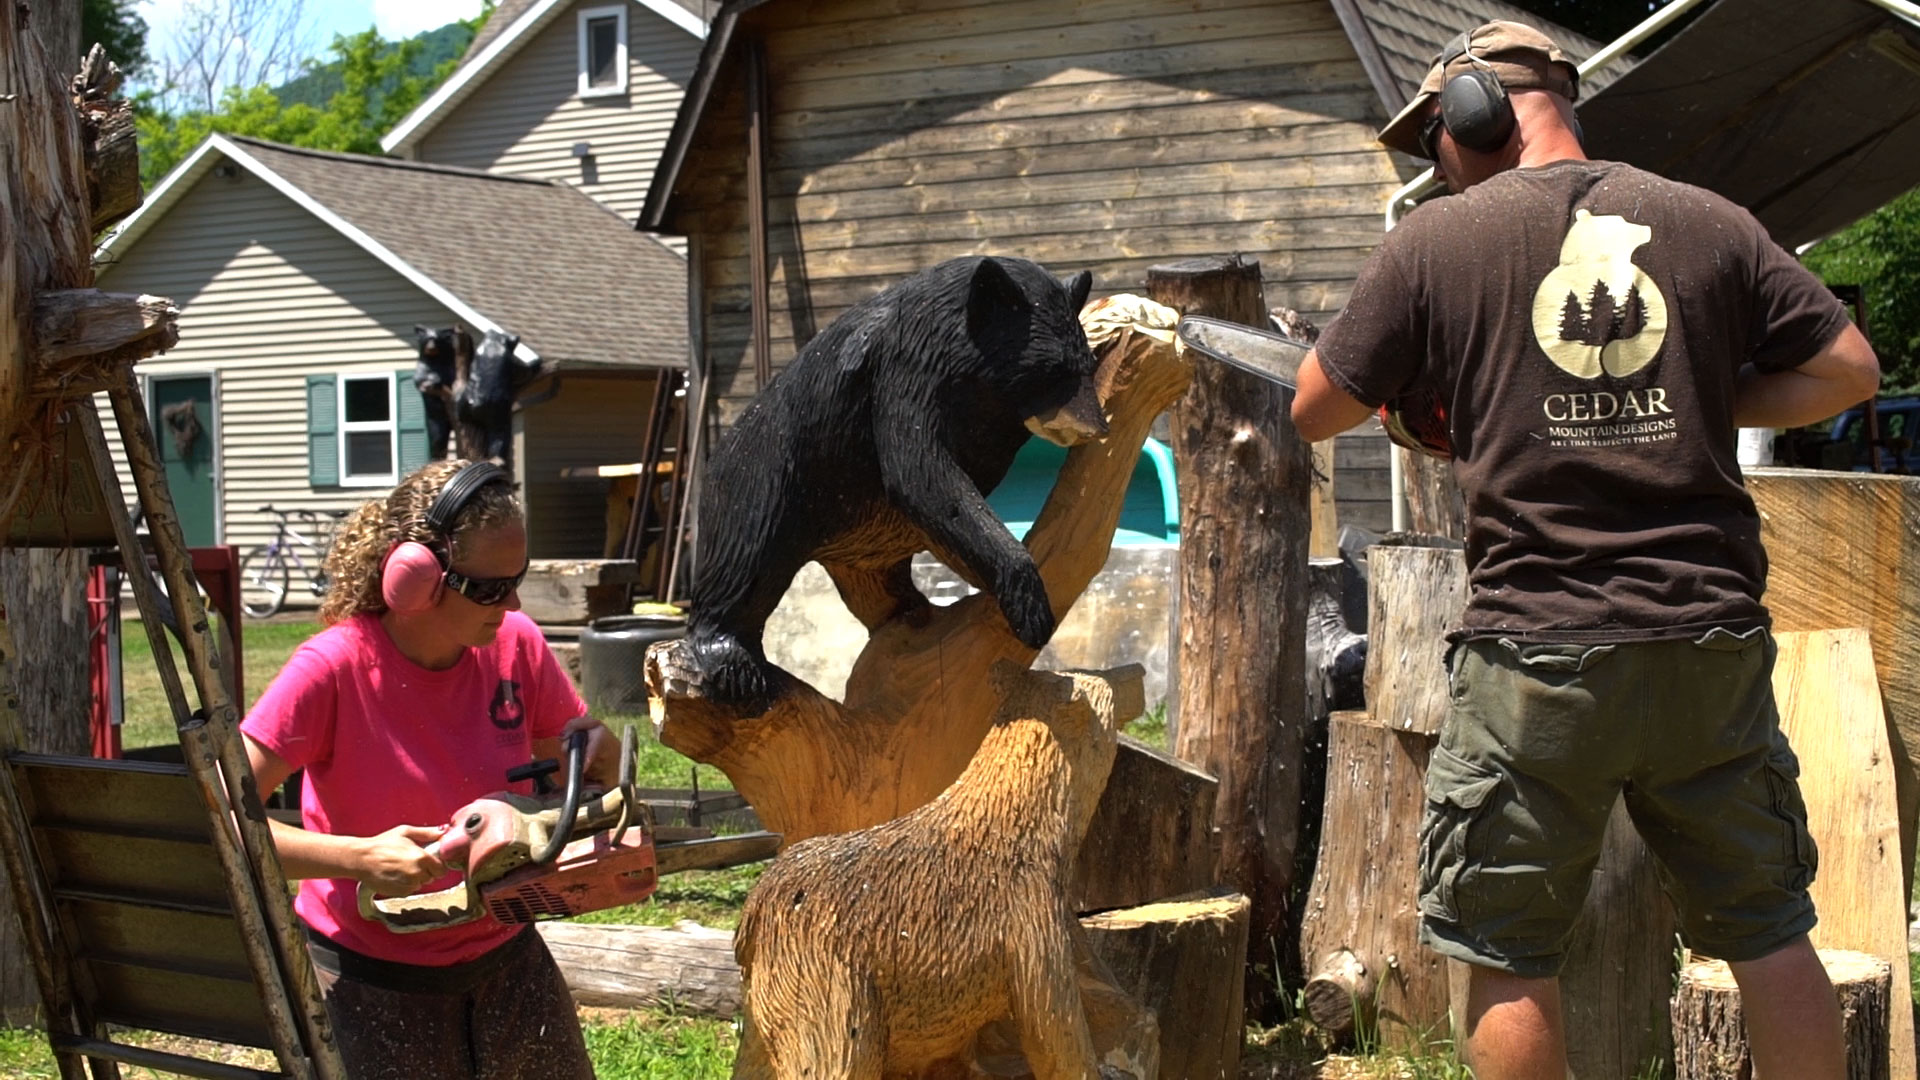 Cedar Mountains Design artists Heath and Hillary Bender carve a bear out of a log with chainsaws